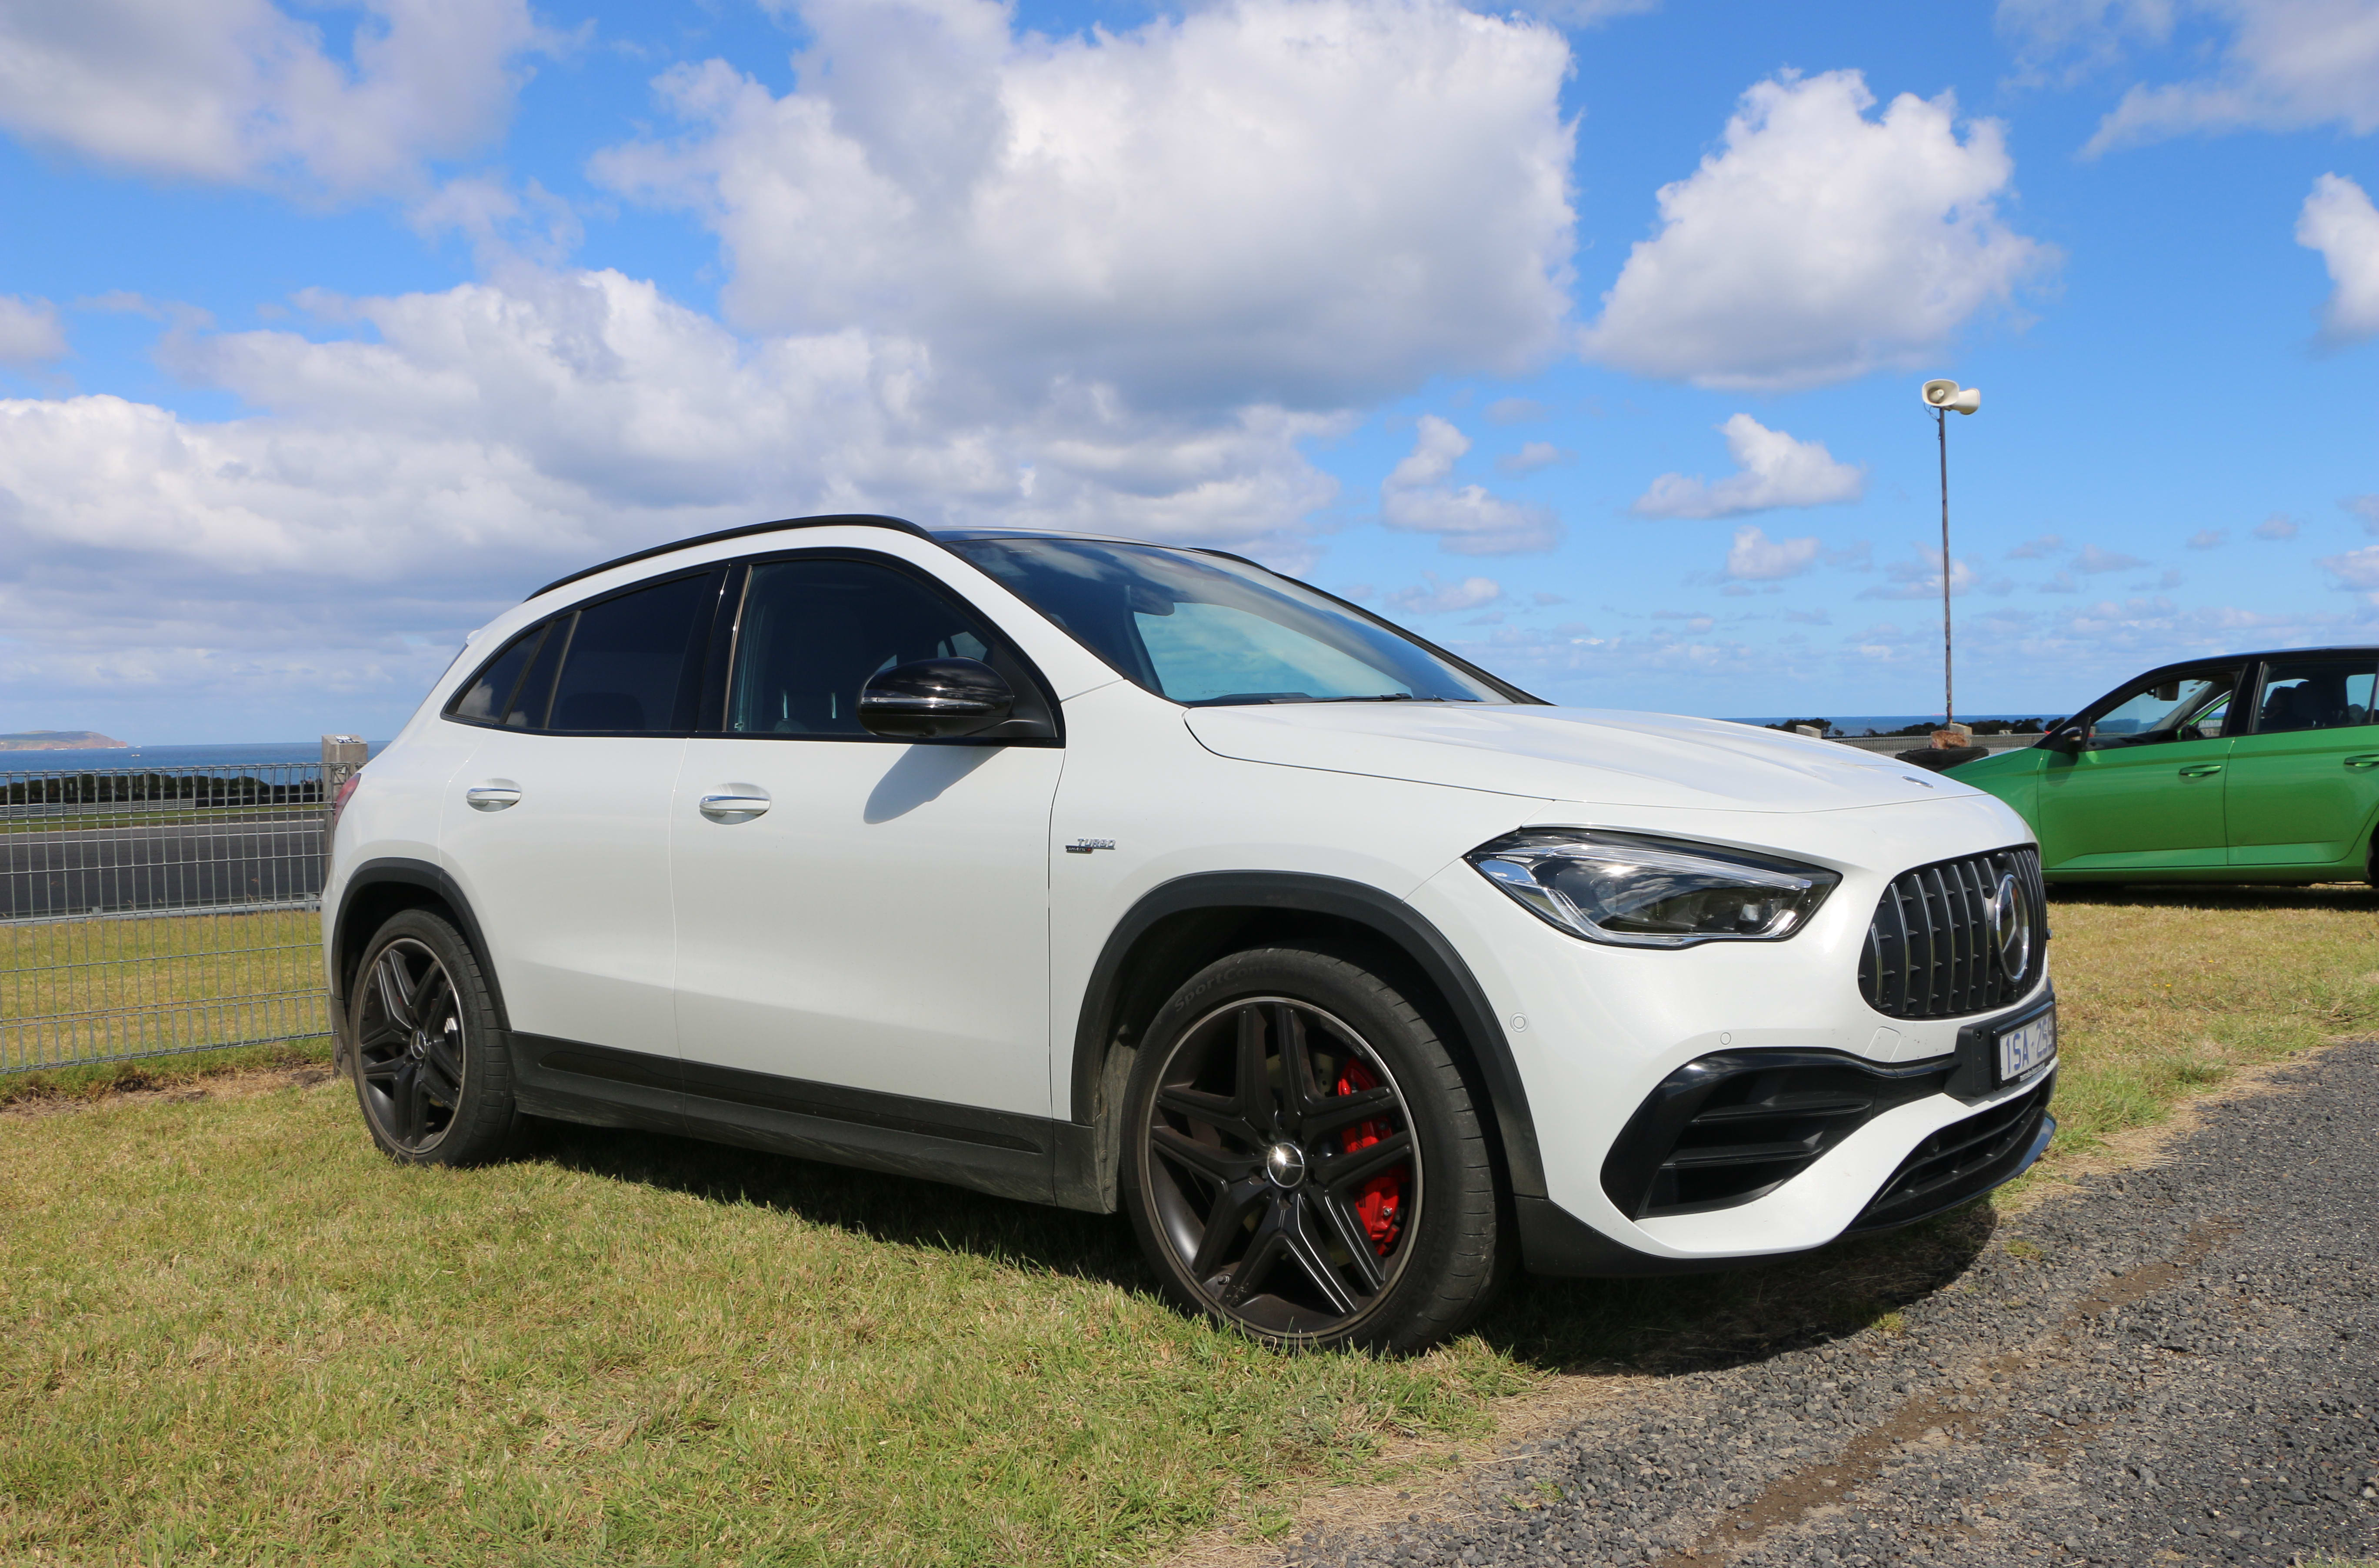 2021 Mercedes-AMG GLA 45 S long-term review